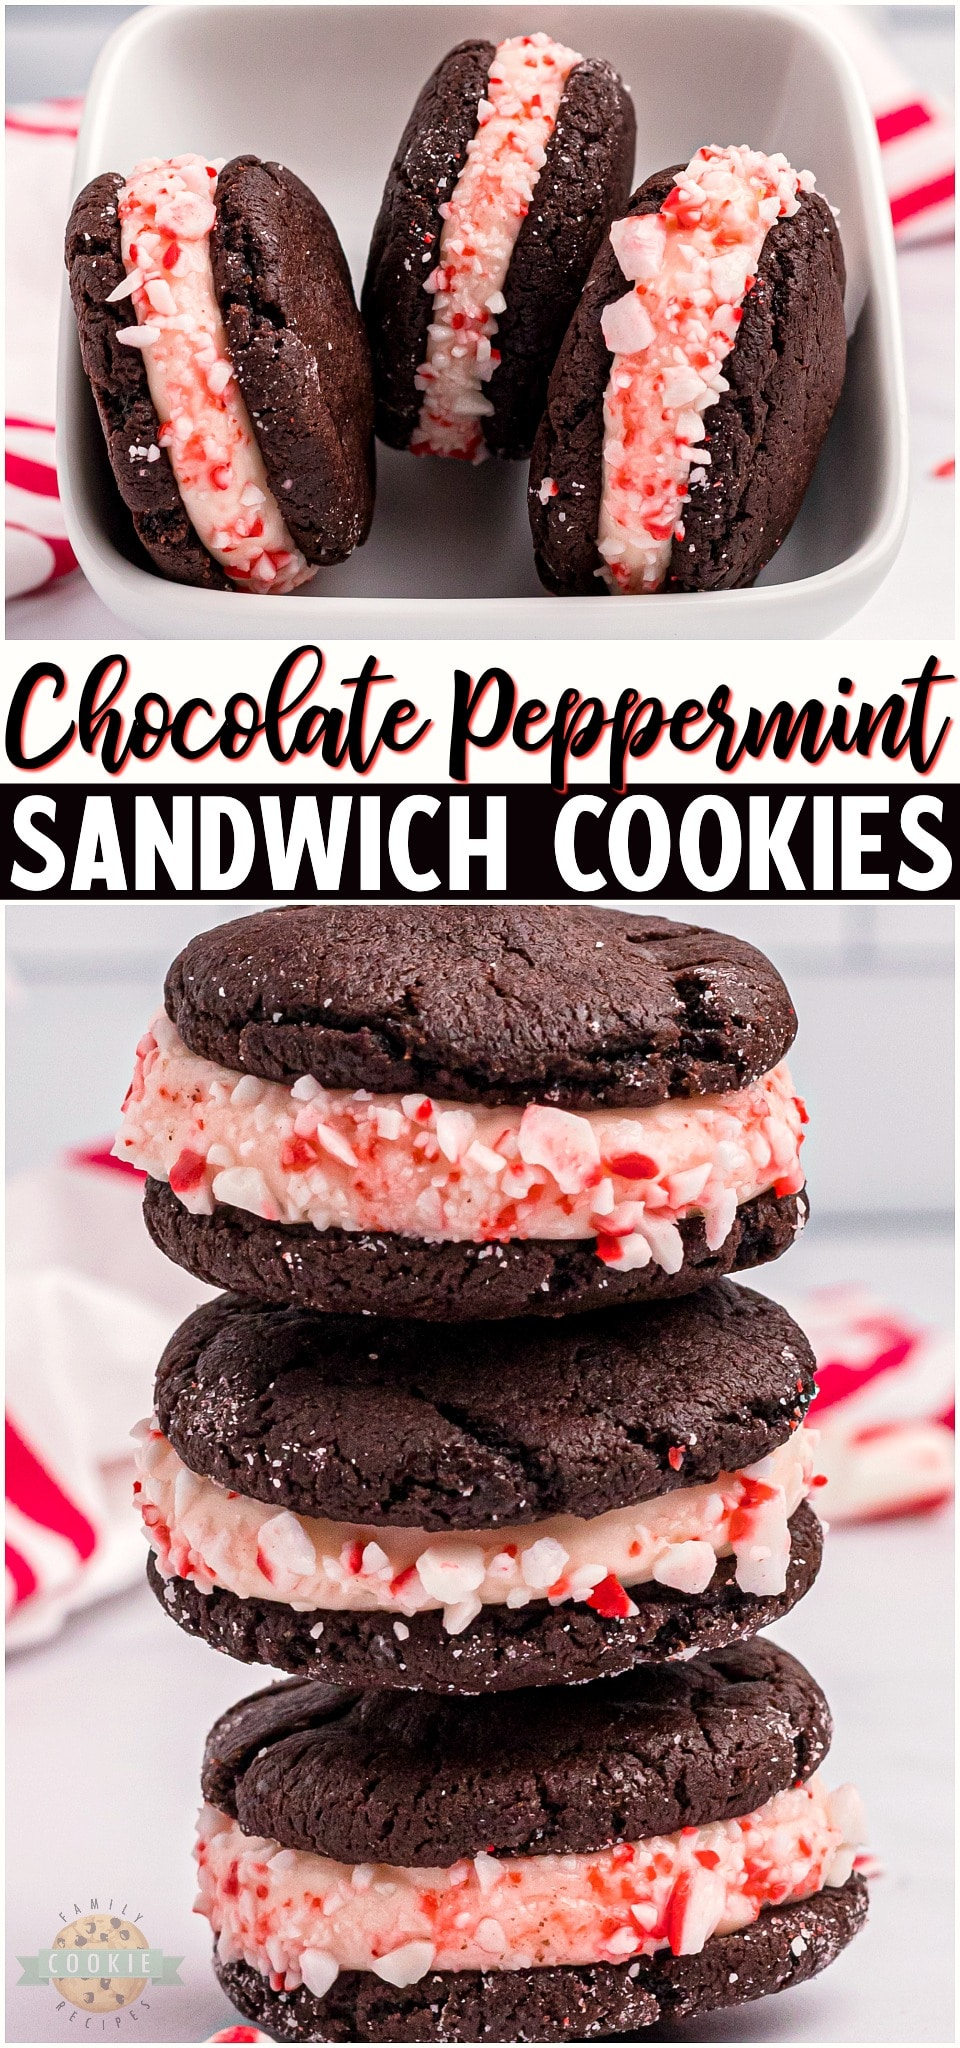 Peppermint Chocolate Sandwich Cookies are a lovely holiday treat made with soft chocolate cookies and a peppermint cheesecake filling. Perfect holiday cookies for gift giving and dessert trays! #peppermint #chocolate #cookies #baking #dessert #holidays #easyrecipe from FAMILY COOKIE RECIPES via @buttergirls